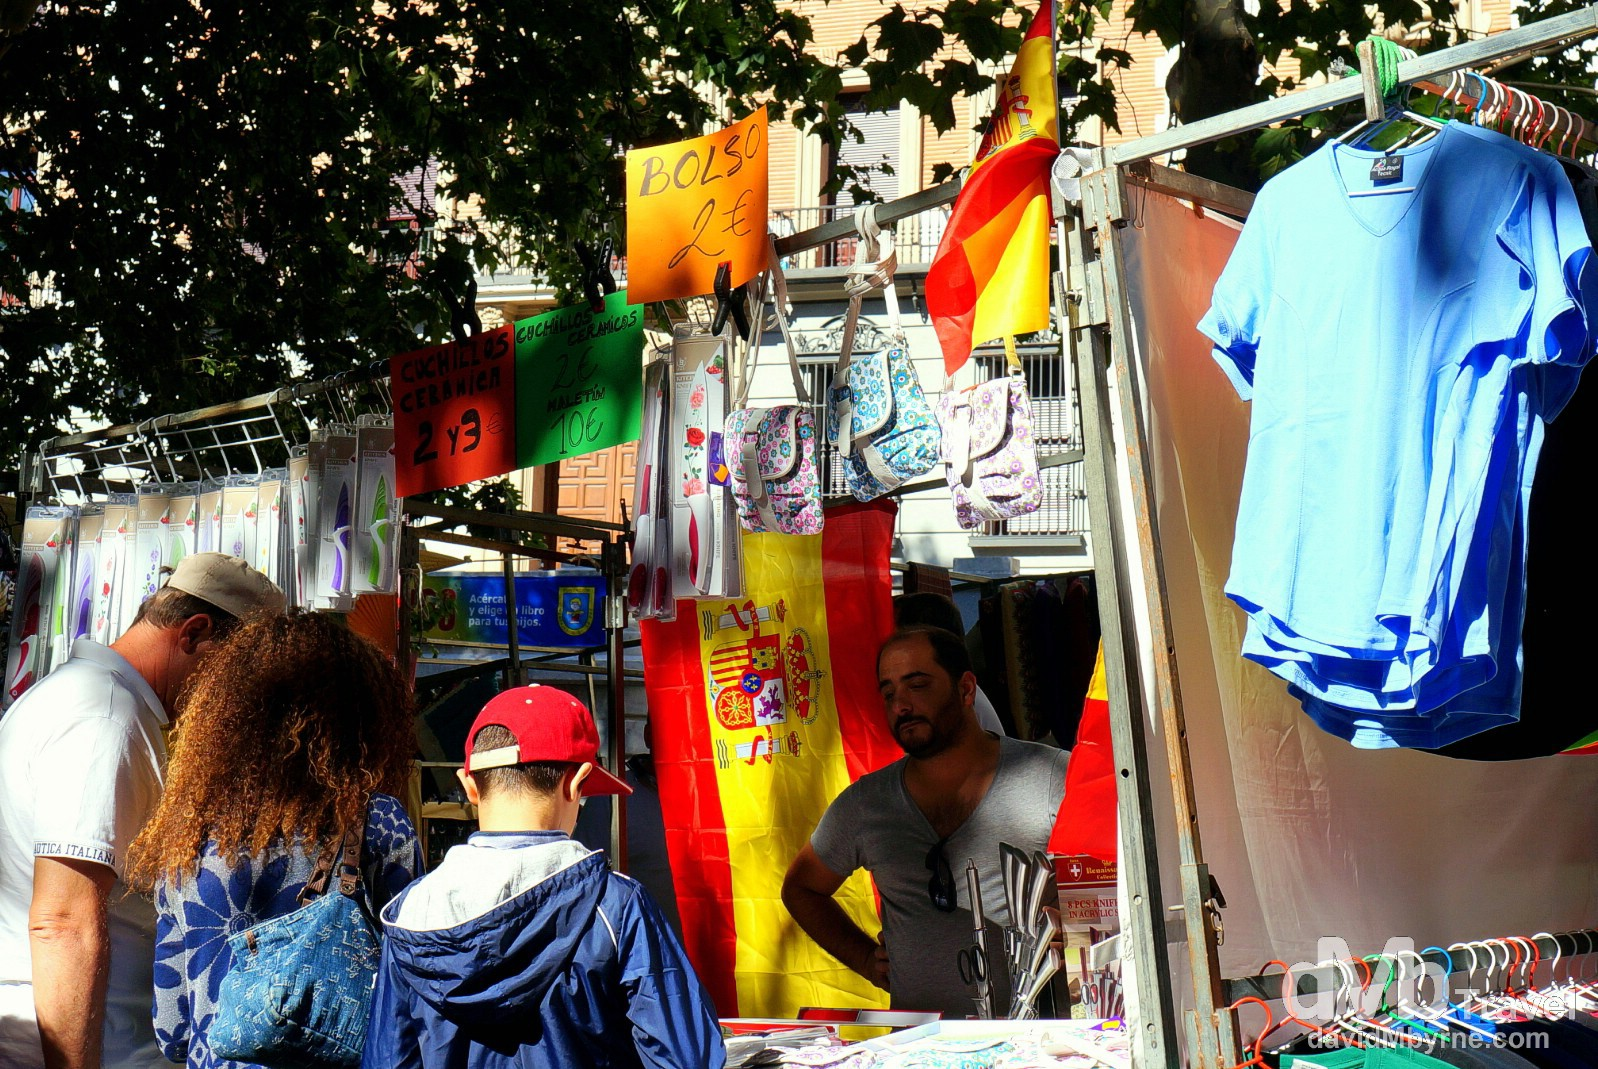 El Rastro flea market on Ribera de Curtidores, Madrid, Spain. June 15th, 2014.